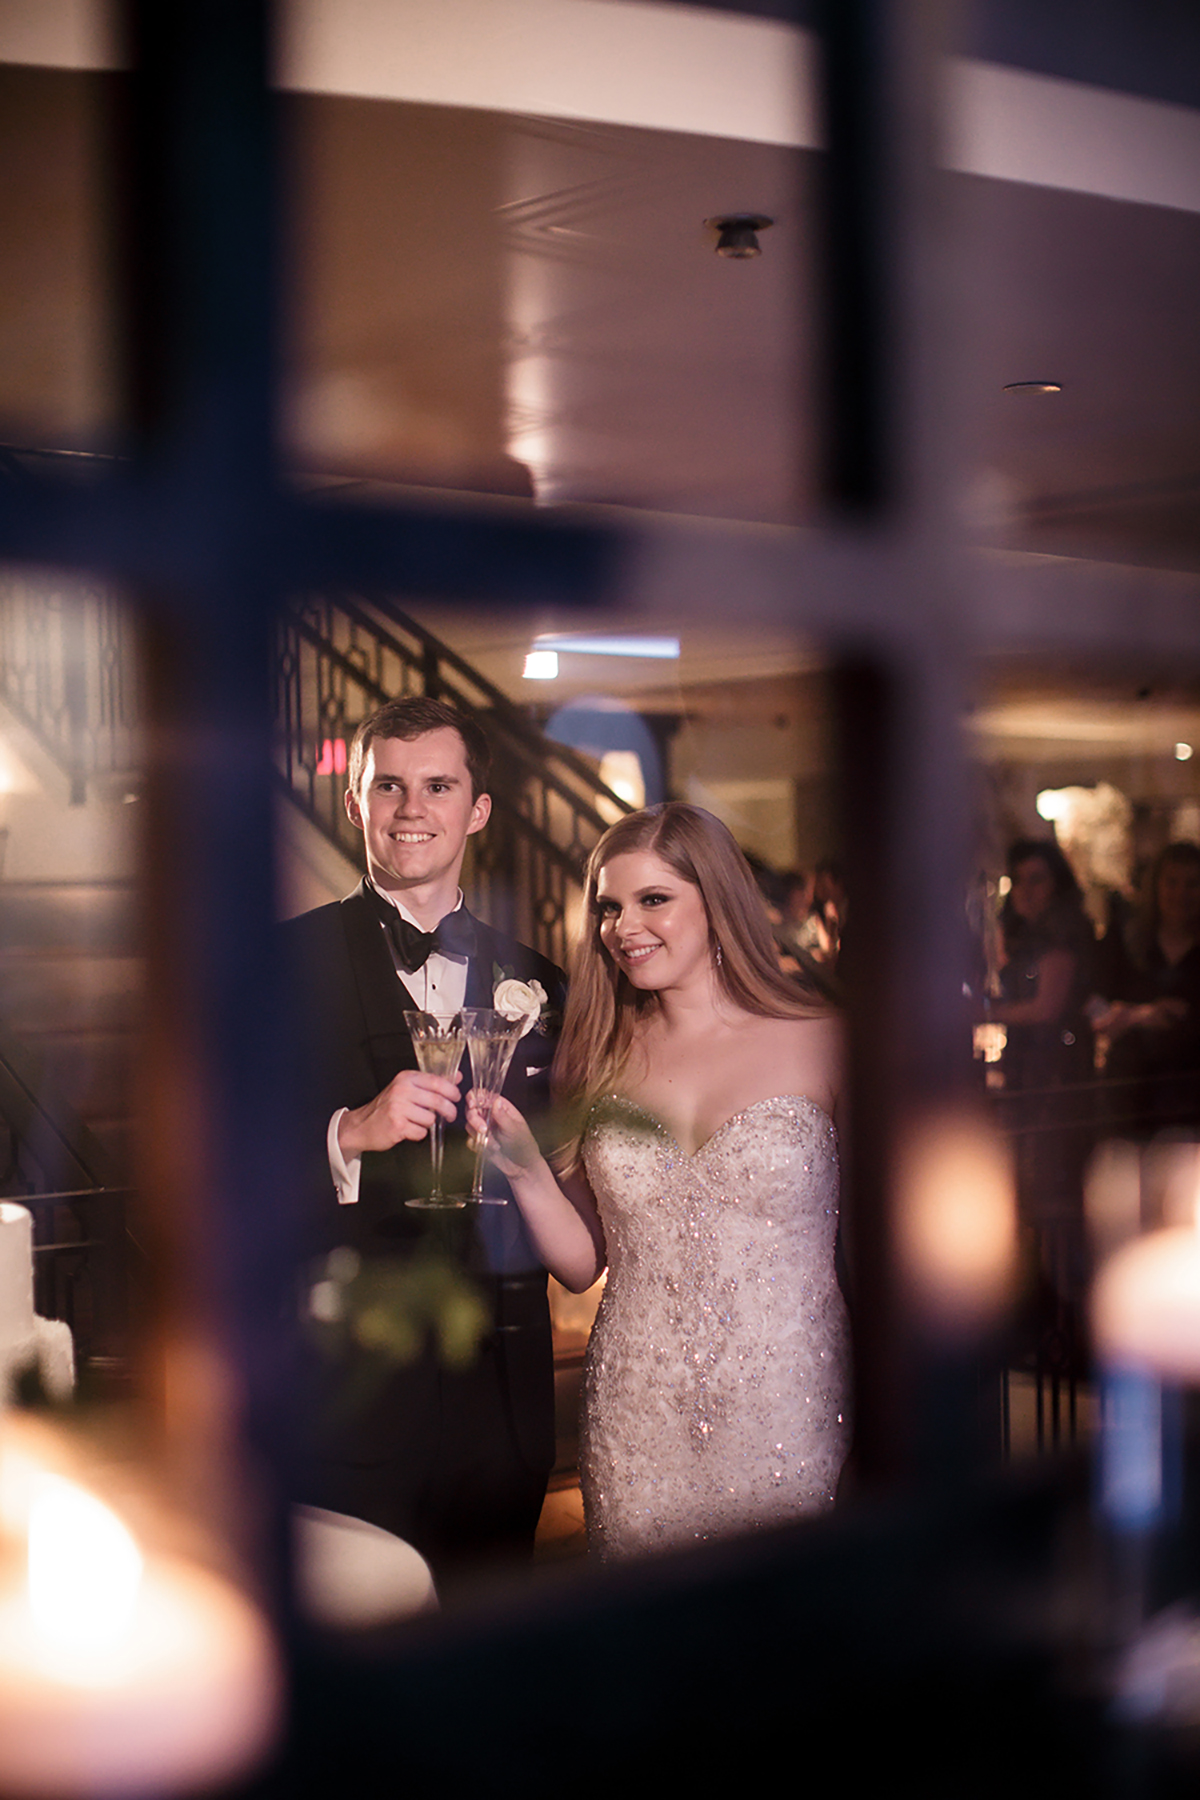 cute moments to capture during the wedding - the toasts